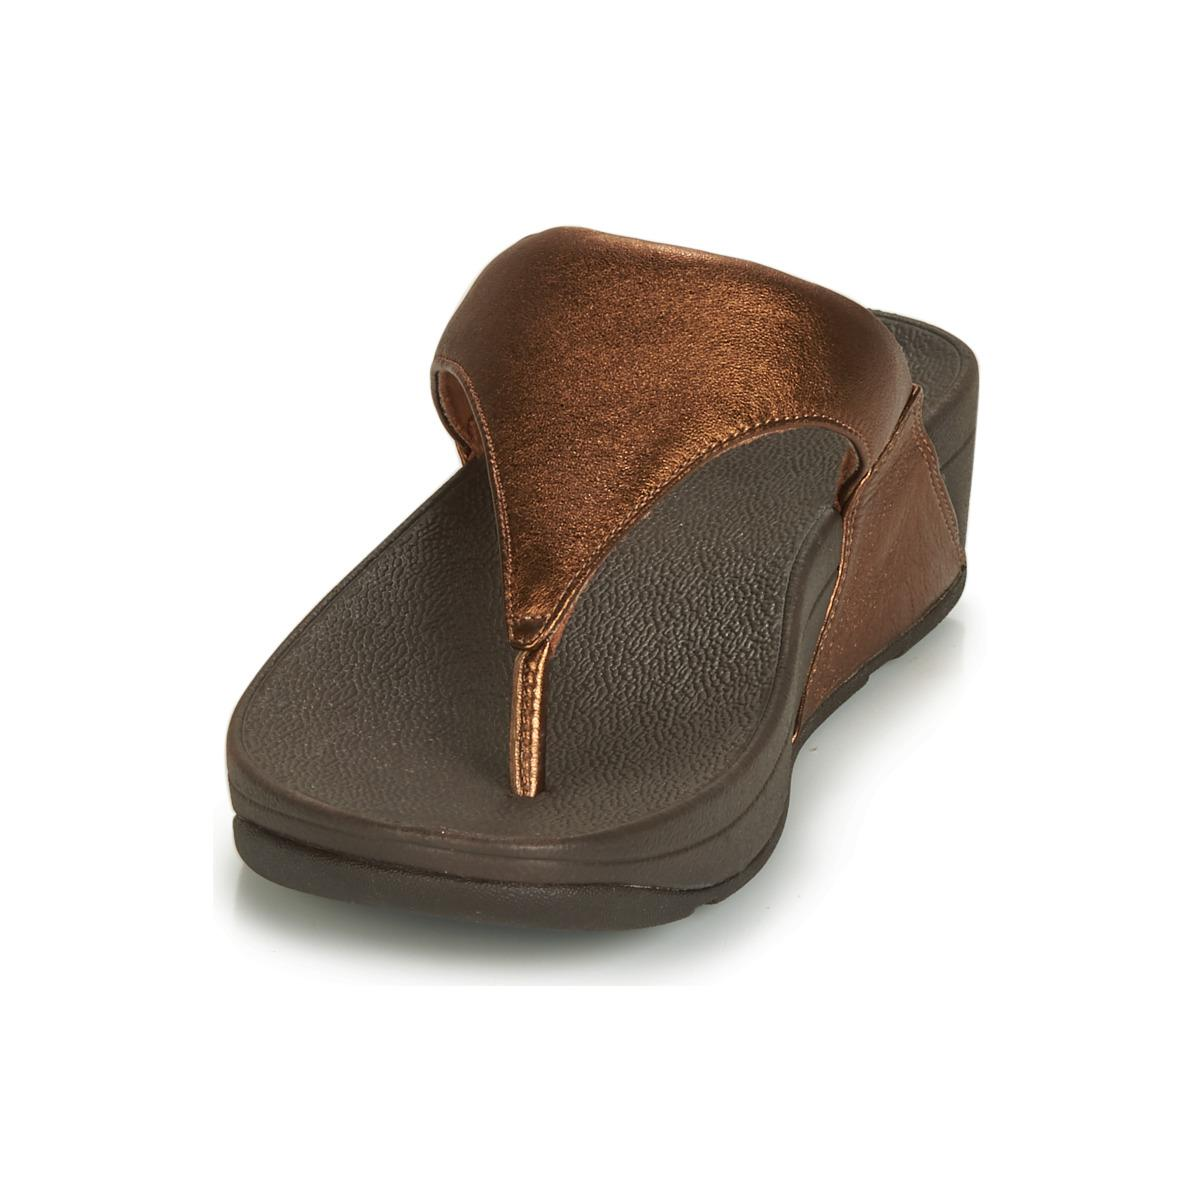 0ec2590cd5ef Fitflop - Brown Lulu Leather Toepost Sandals - Lyst. View fullscreen